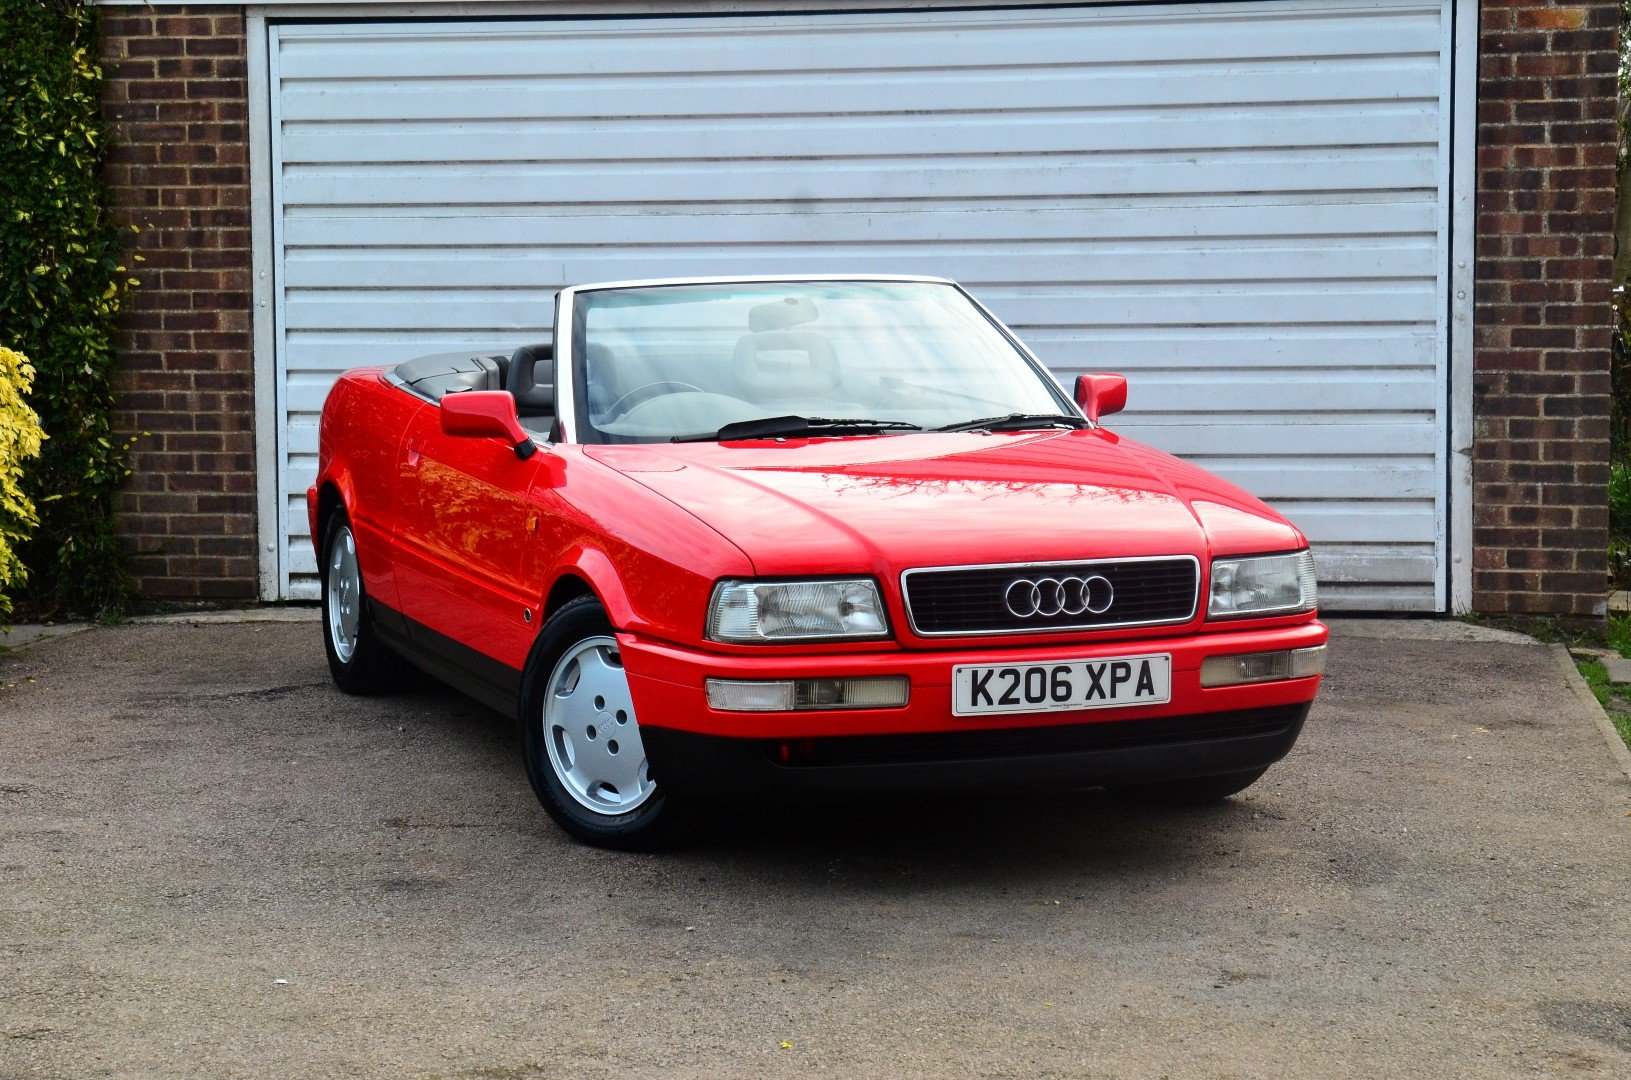 1993 Audi Cabriolet 2.3 Manual For Sale (picture 1 of 6)